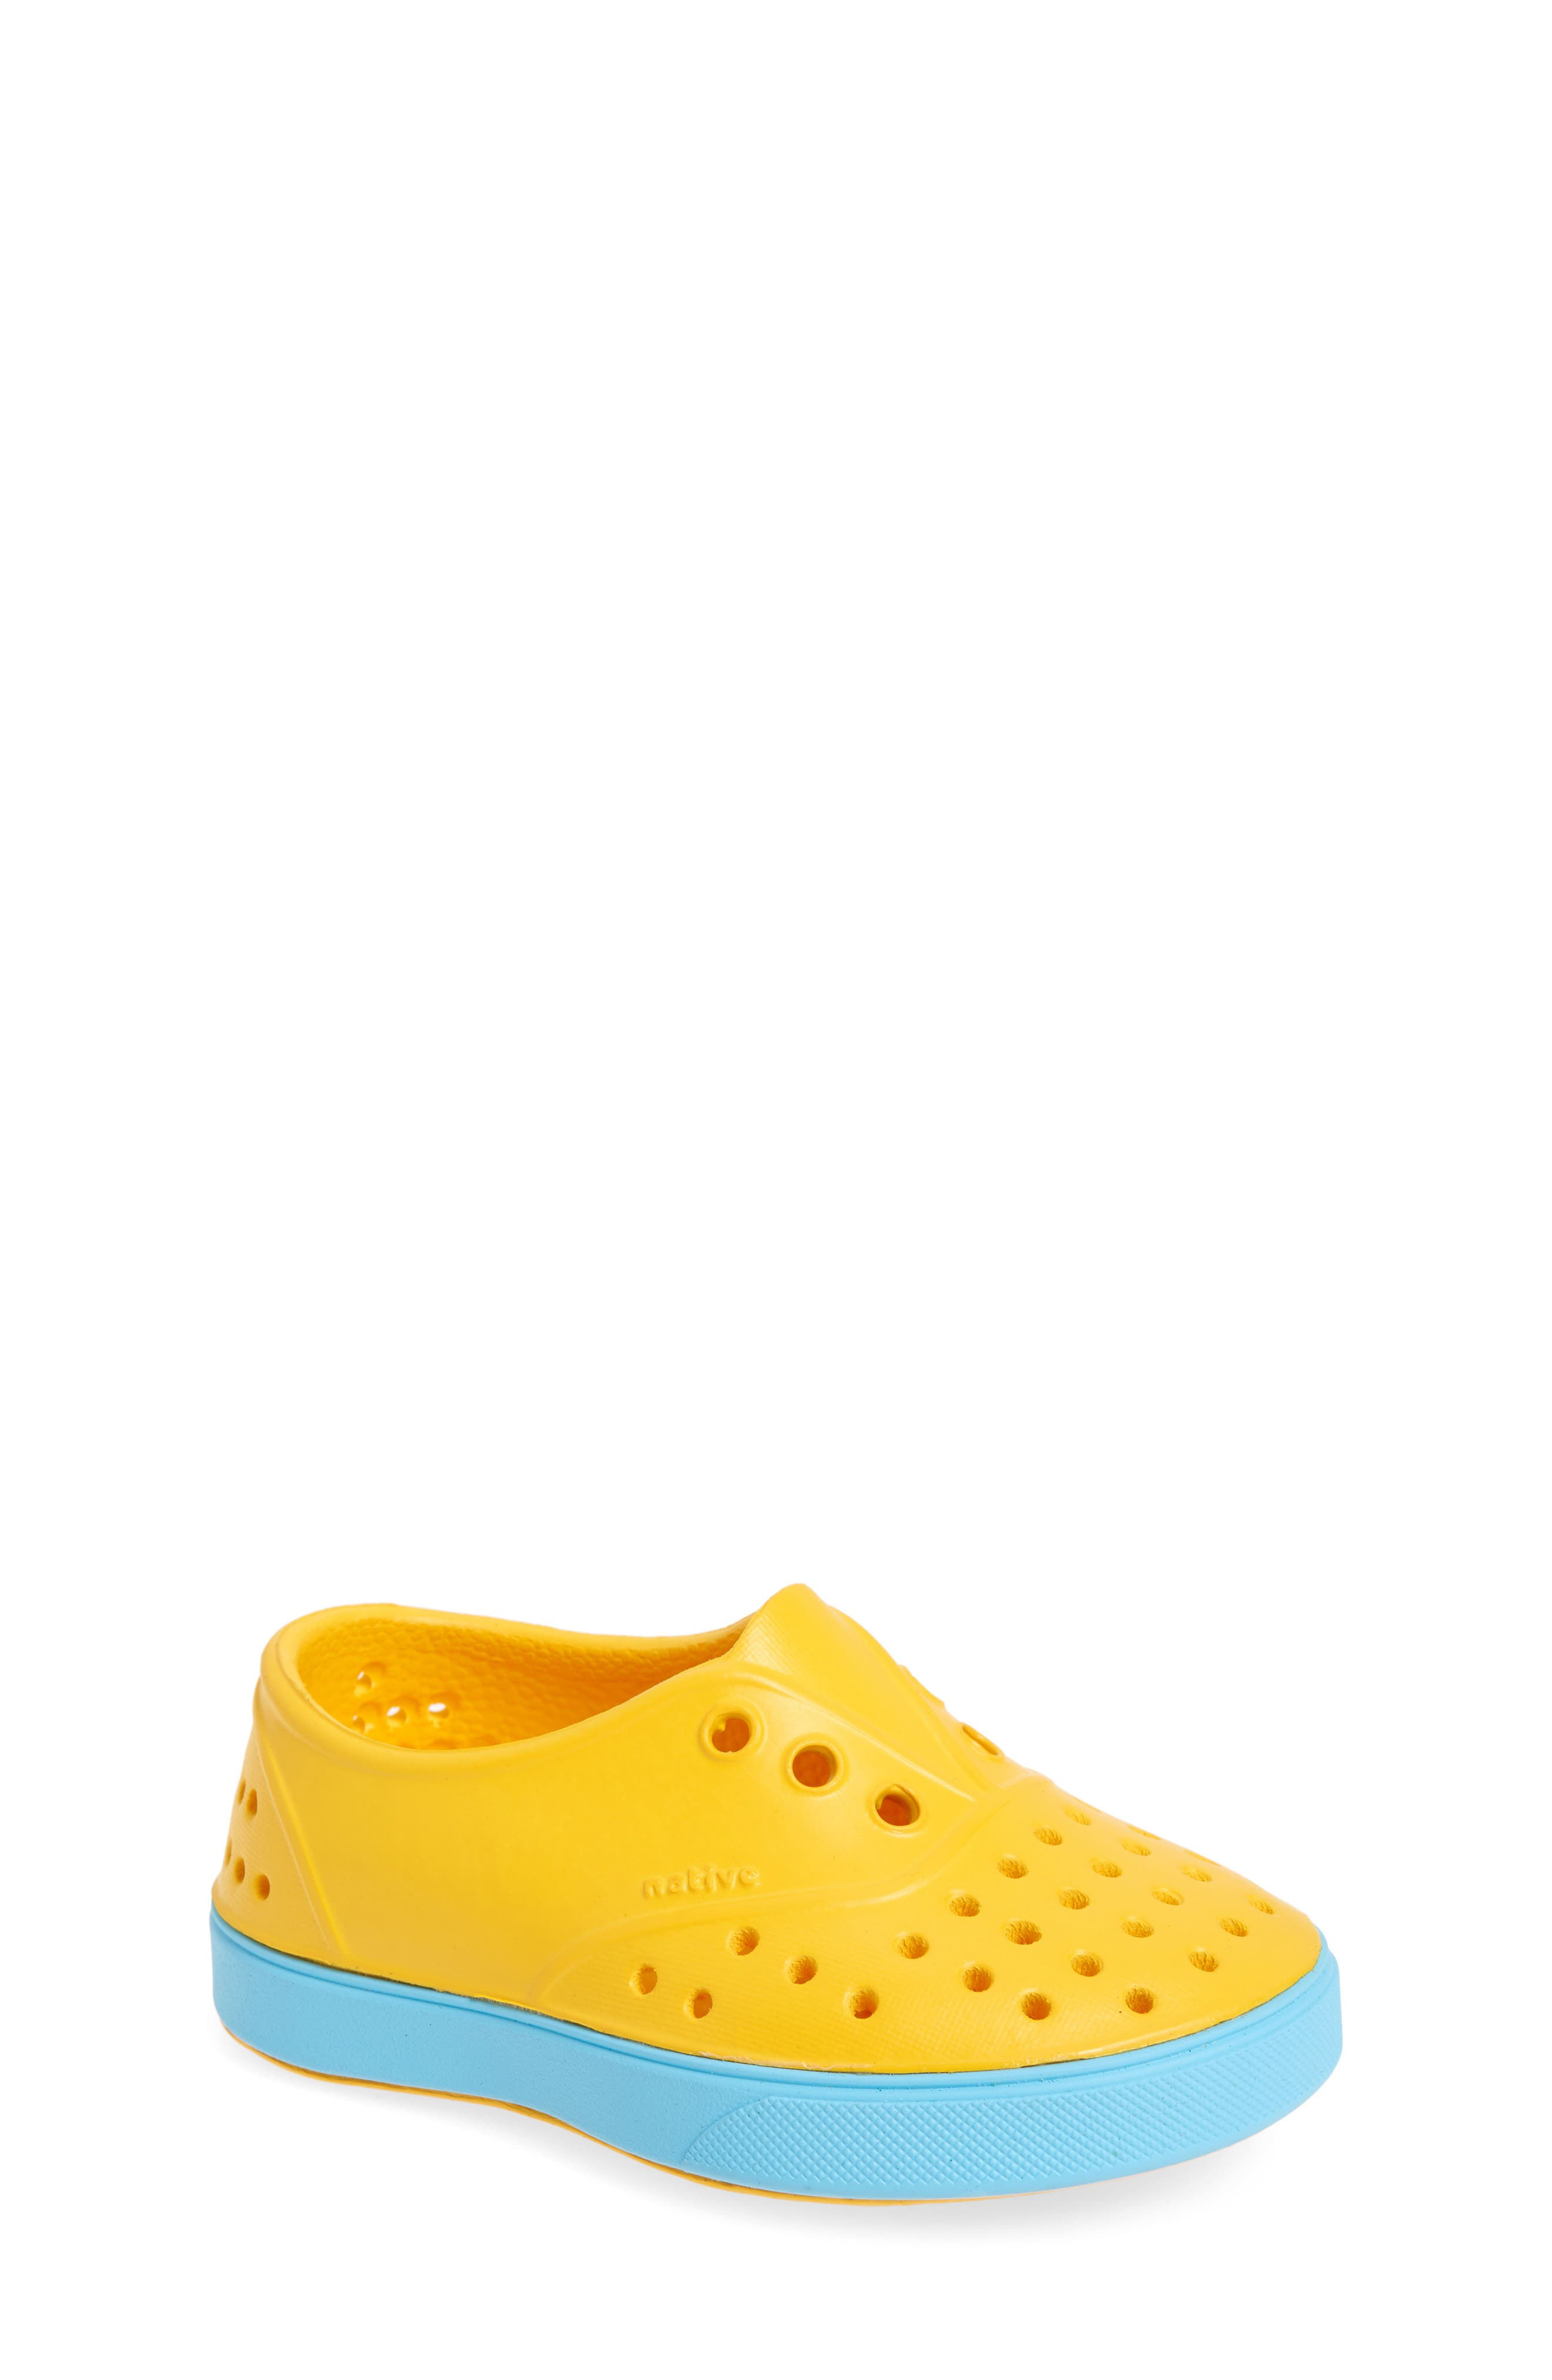 Miller Water Friendly Slip-On Sneaker,                         Main,                         color, Yellow/ Surfer Blue